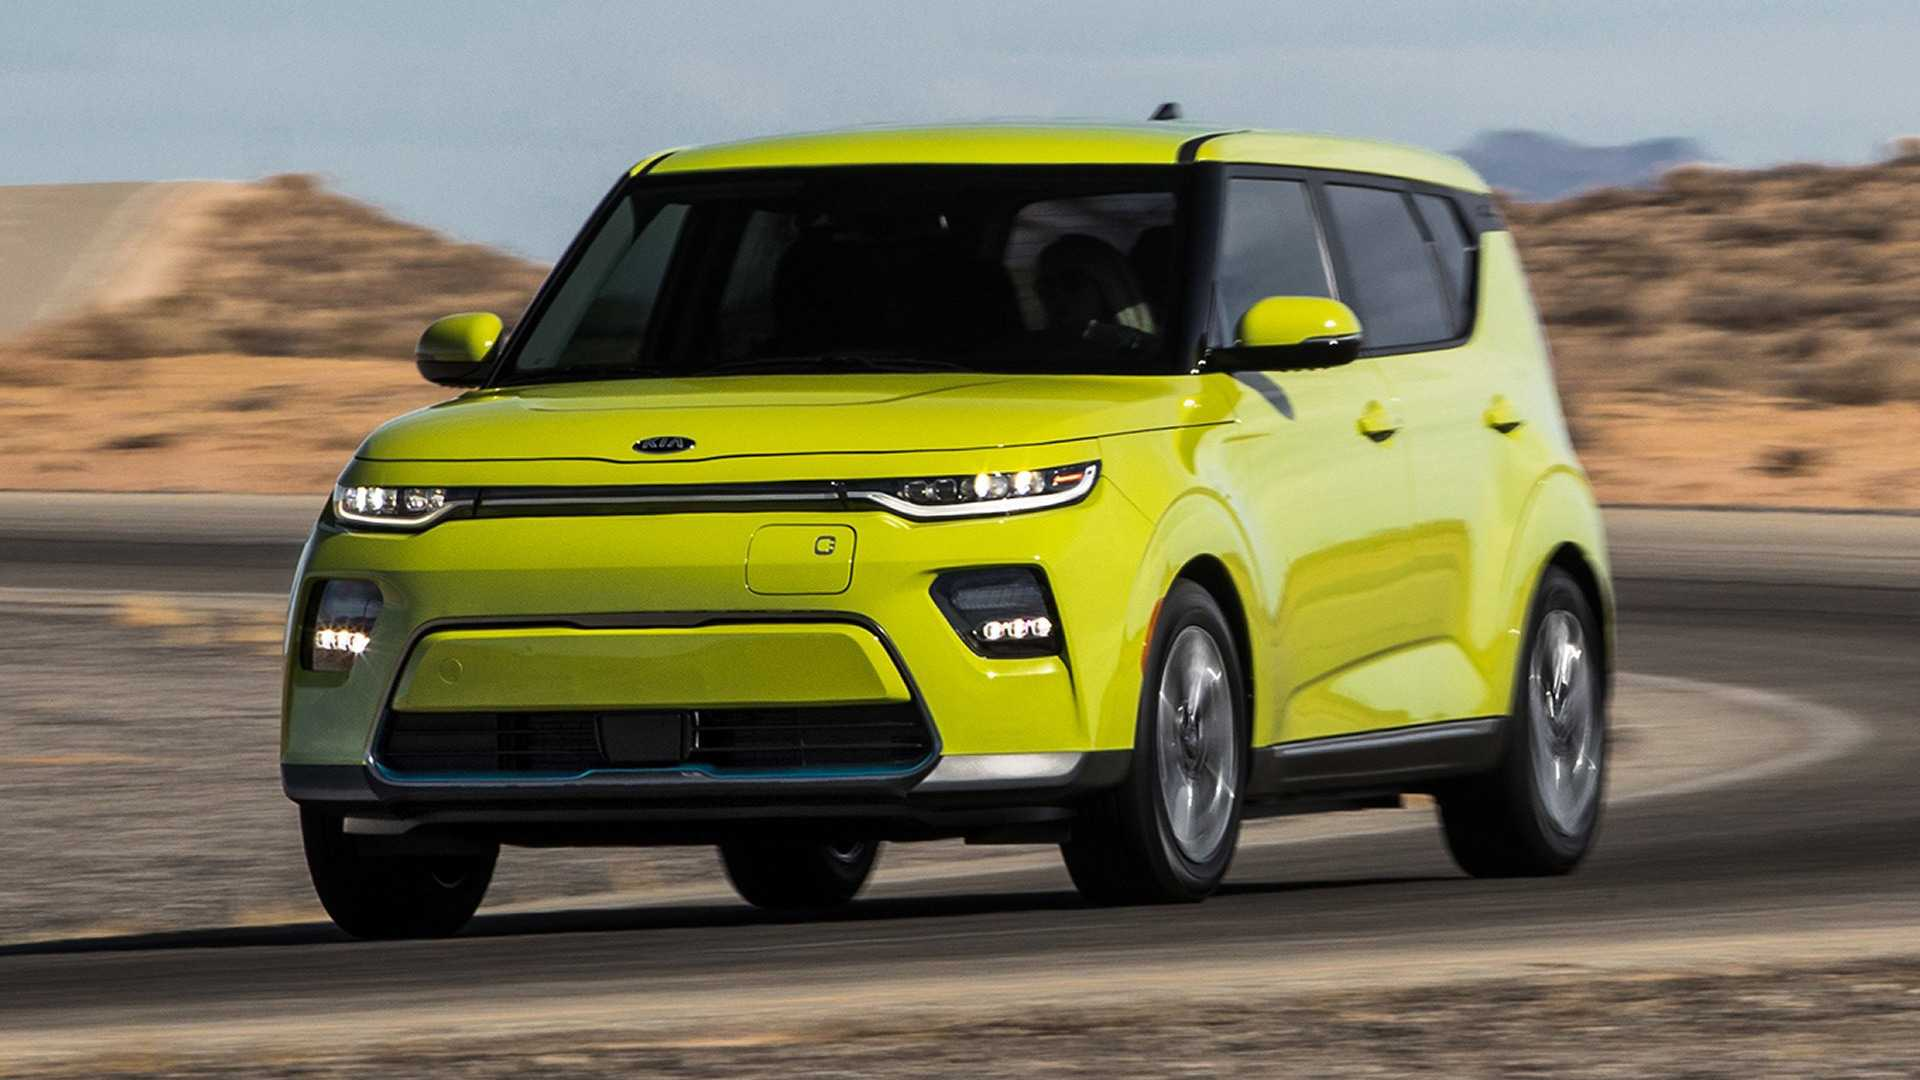 25 New 2020 Kia Soul Solar Yellow Prices